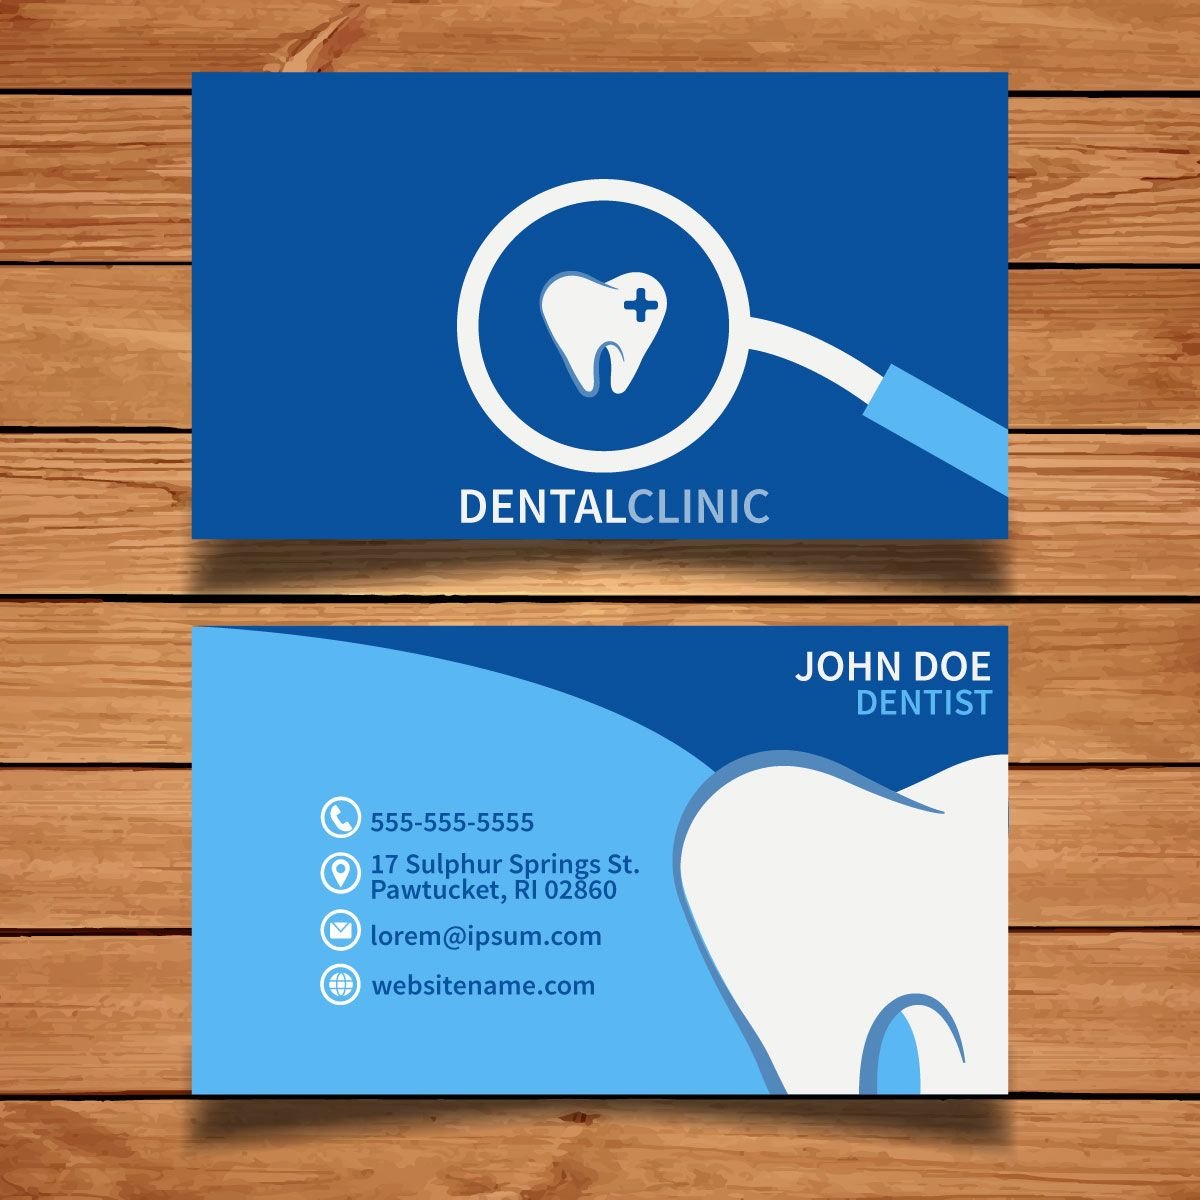 15 Free Business Card Templates | Business cards, Dental and Card ...